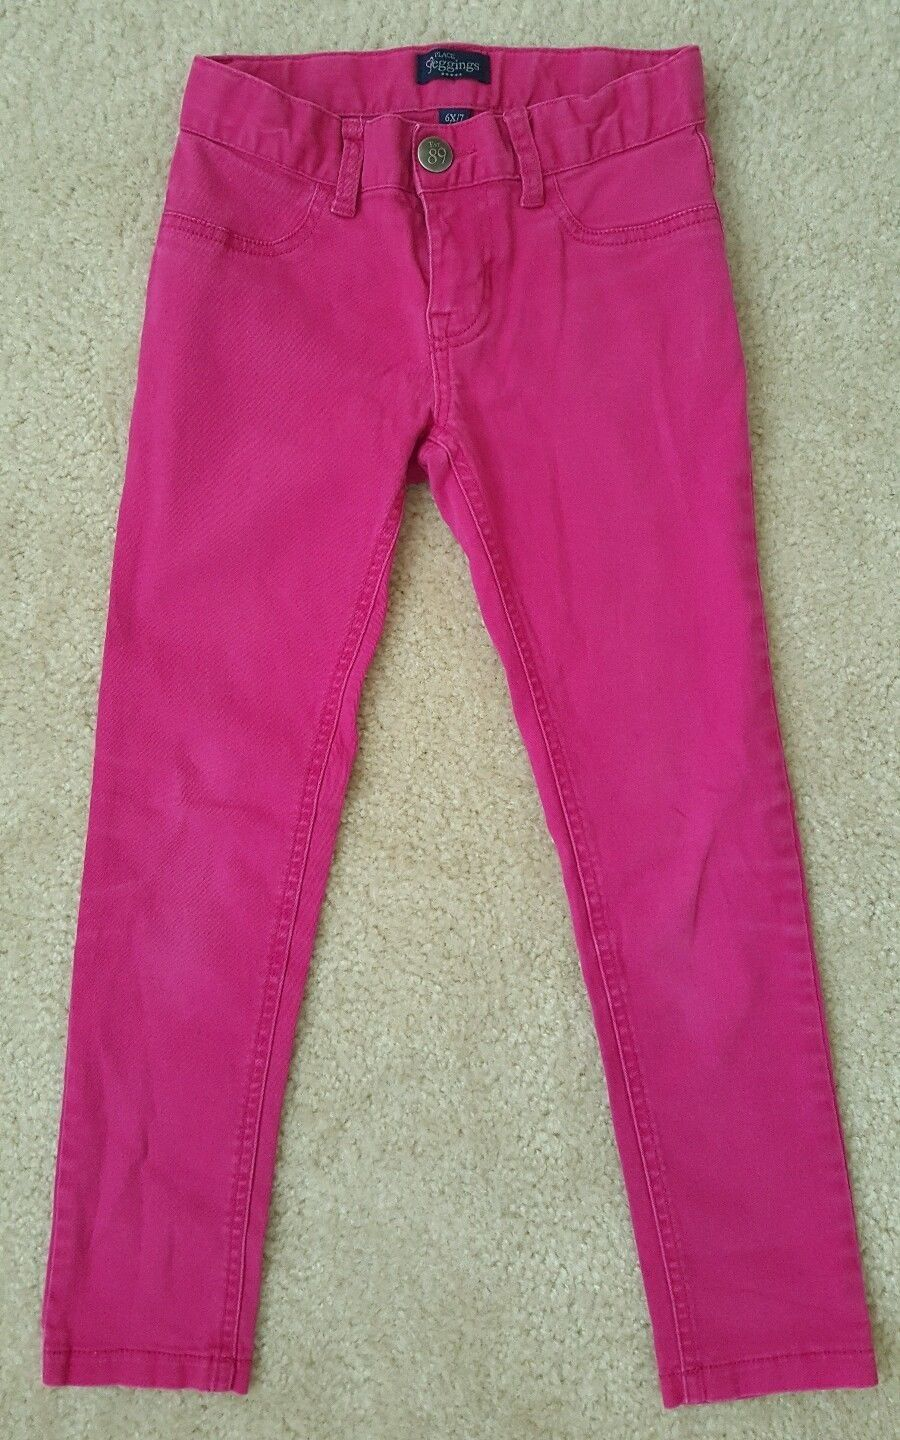 PLACE GIRL'S SIZE 10 JEANS FUCHSIA PINK DENIM STRETCH JEGGINGS ADJUSTABLE WAIST